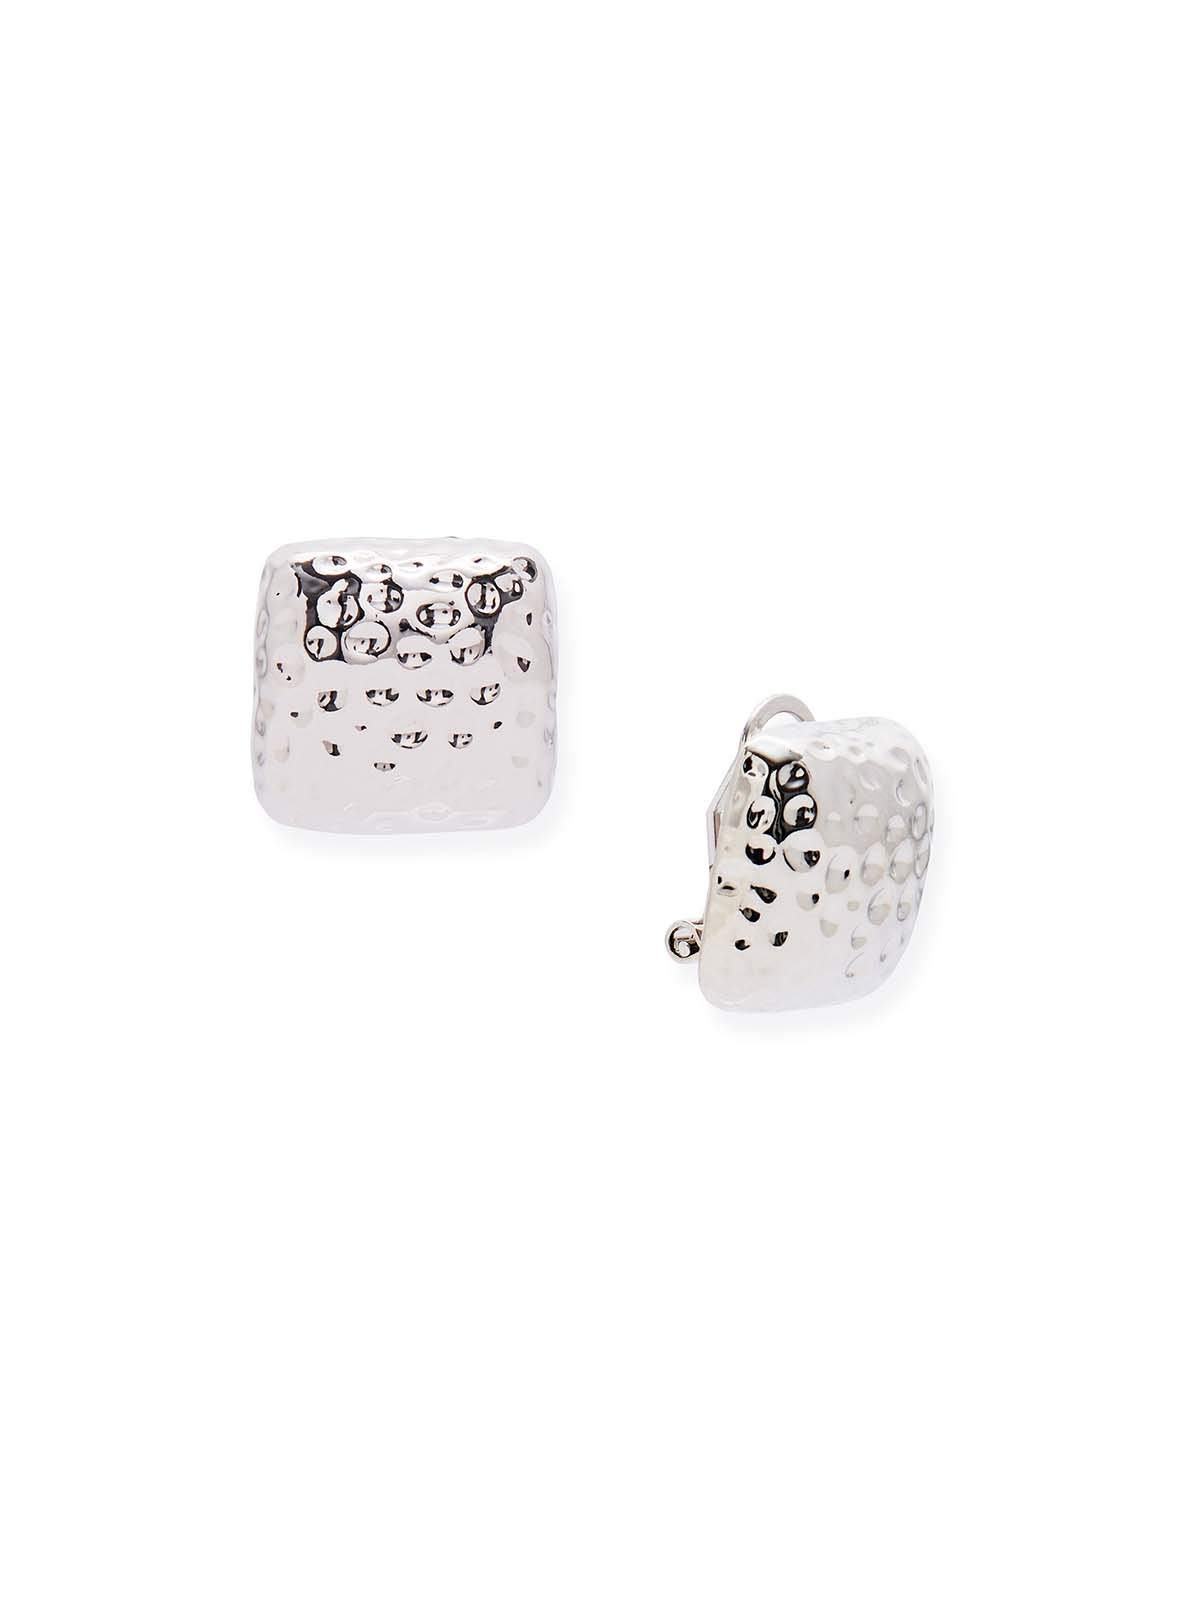 Silver Tone Hammered Square Clip On Earrings by Misook